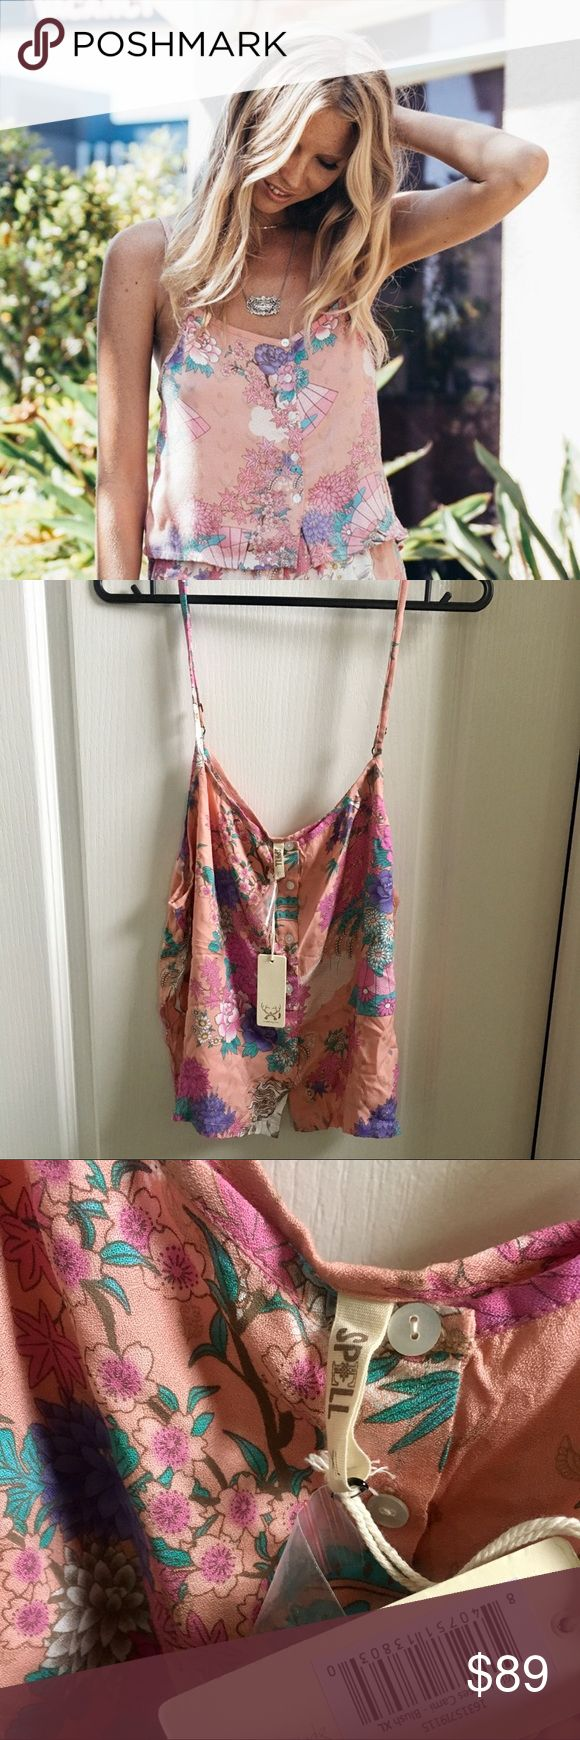 Spell Designs Wild Horses Pink Cami XL Spell Designs Wild Horses Pink Cami XL. Brand new, beautiful print, but sadly too big for me, can also be worn with jeans and a cute cardigan. No trades. Listed elsewhere Spell & The Gypsy Collective Intimates & Sleepwear Pajamas